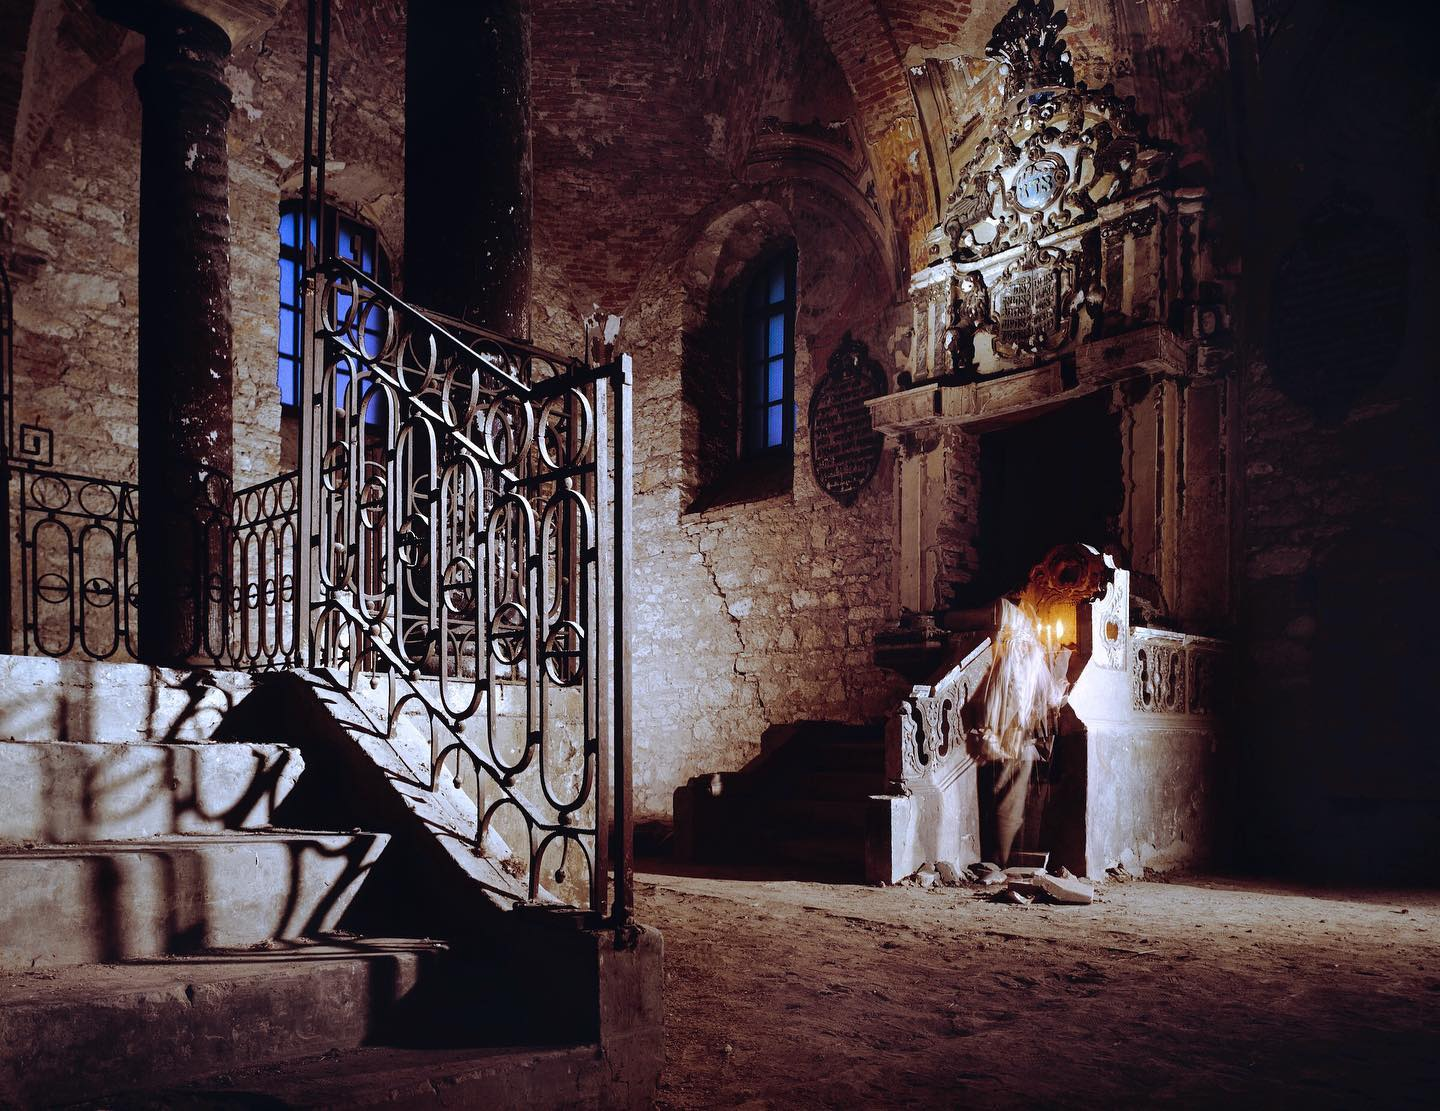 Kehilat HaKodesh, Mád, Hungary, 1995  Neil Folberg, an Israeli-American photographer, traveled around the world capturing the unique synagogues within small Jewish communities. Many of the synagogues are dilapidated and unused due to the absence of Jews as a result of the events of WWII. The ones that are still in use serve as reminders of what little is left of what were once thriving communities.   📷©️Neil Folberg/MUUS Collection  #neilfolberg #synagogue #temple #mad #madhungary #hungary #jewish #jewishcommunity #communitycenter #history #carbonprint #colorphotography #1995 #shul #synagogues #hungarian #photography #photooftheday #picoftheday #photographer #muuscollection #art #artist #documentaryphotography #travel #travelphotography #dilapidated #empty #abandoned #fromthearchives